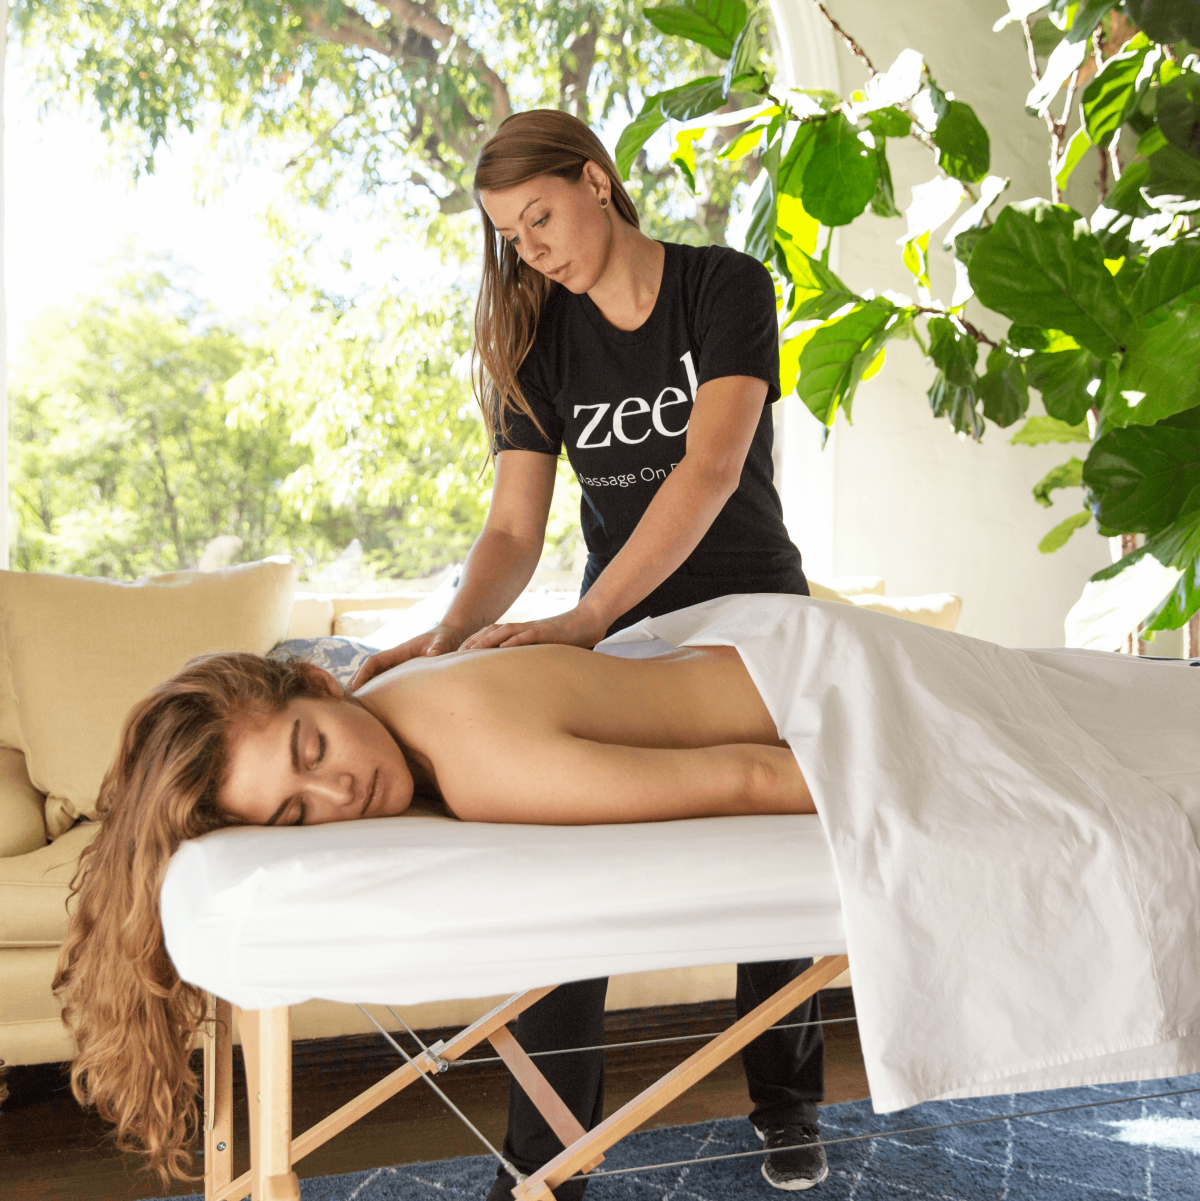 Zeel massage on demand app therapist in home